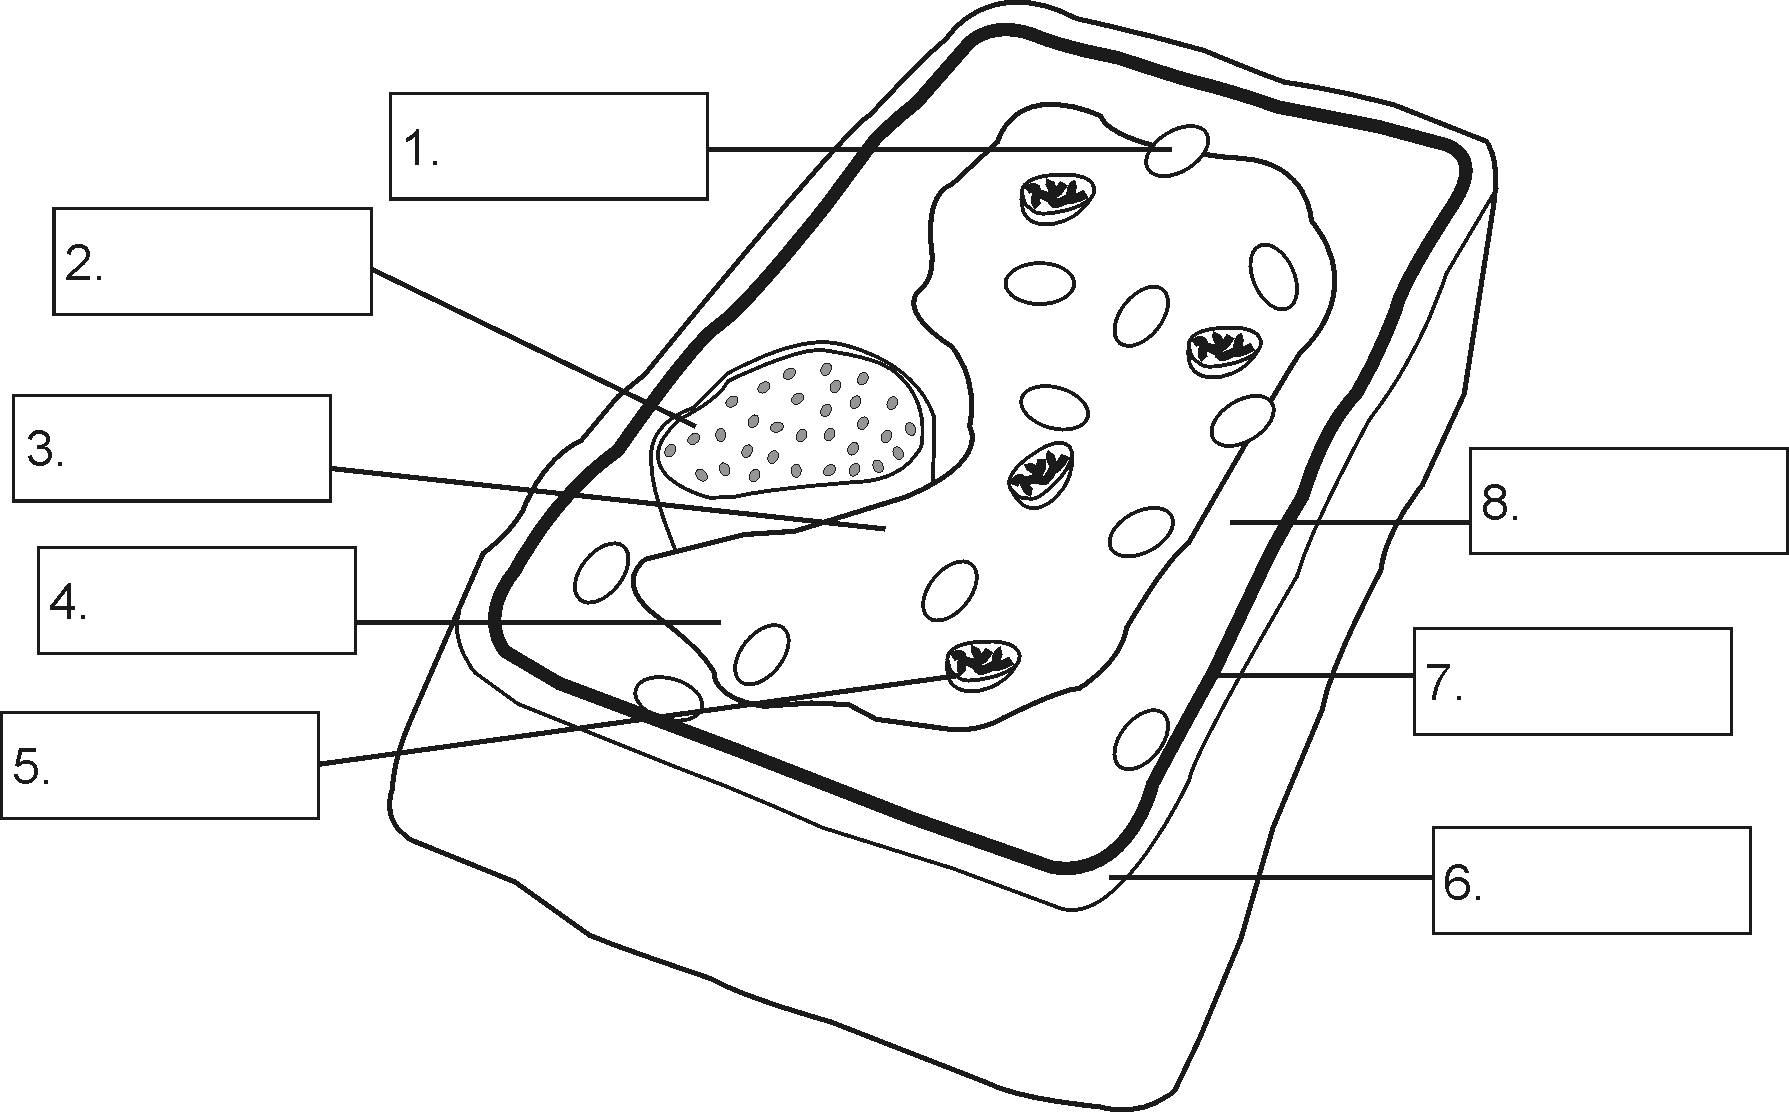 Plant Cell Diagram without Labels   Cell diagram [ 1112 x 1789 Pixel ]